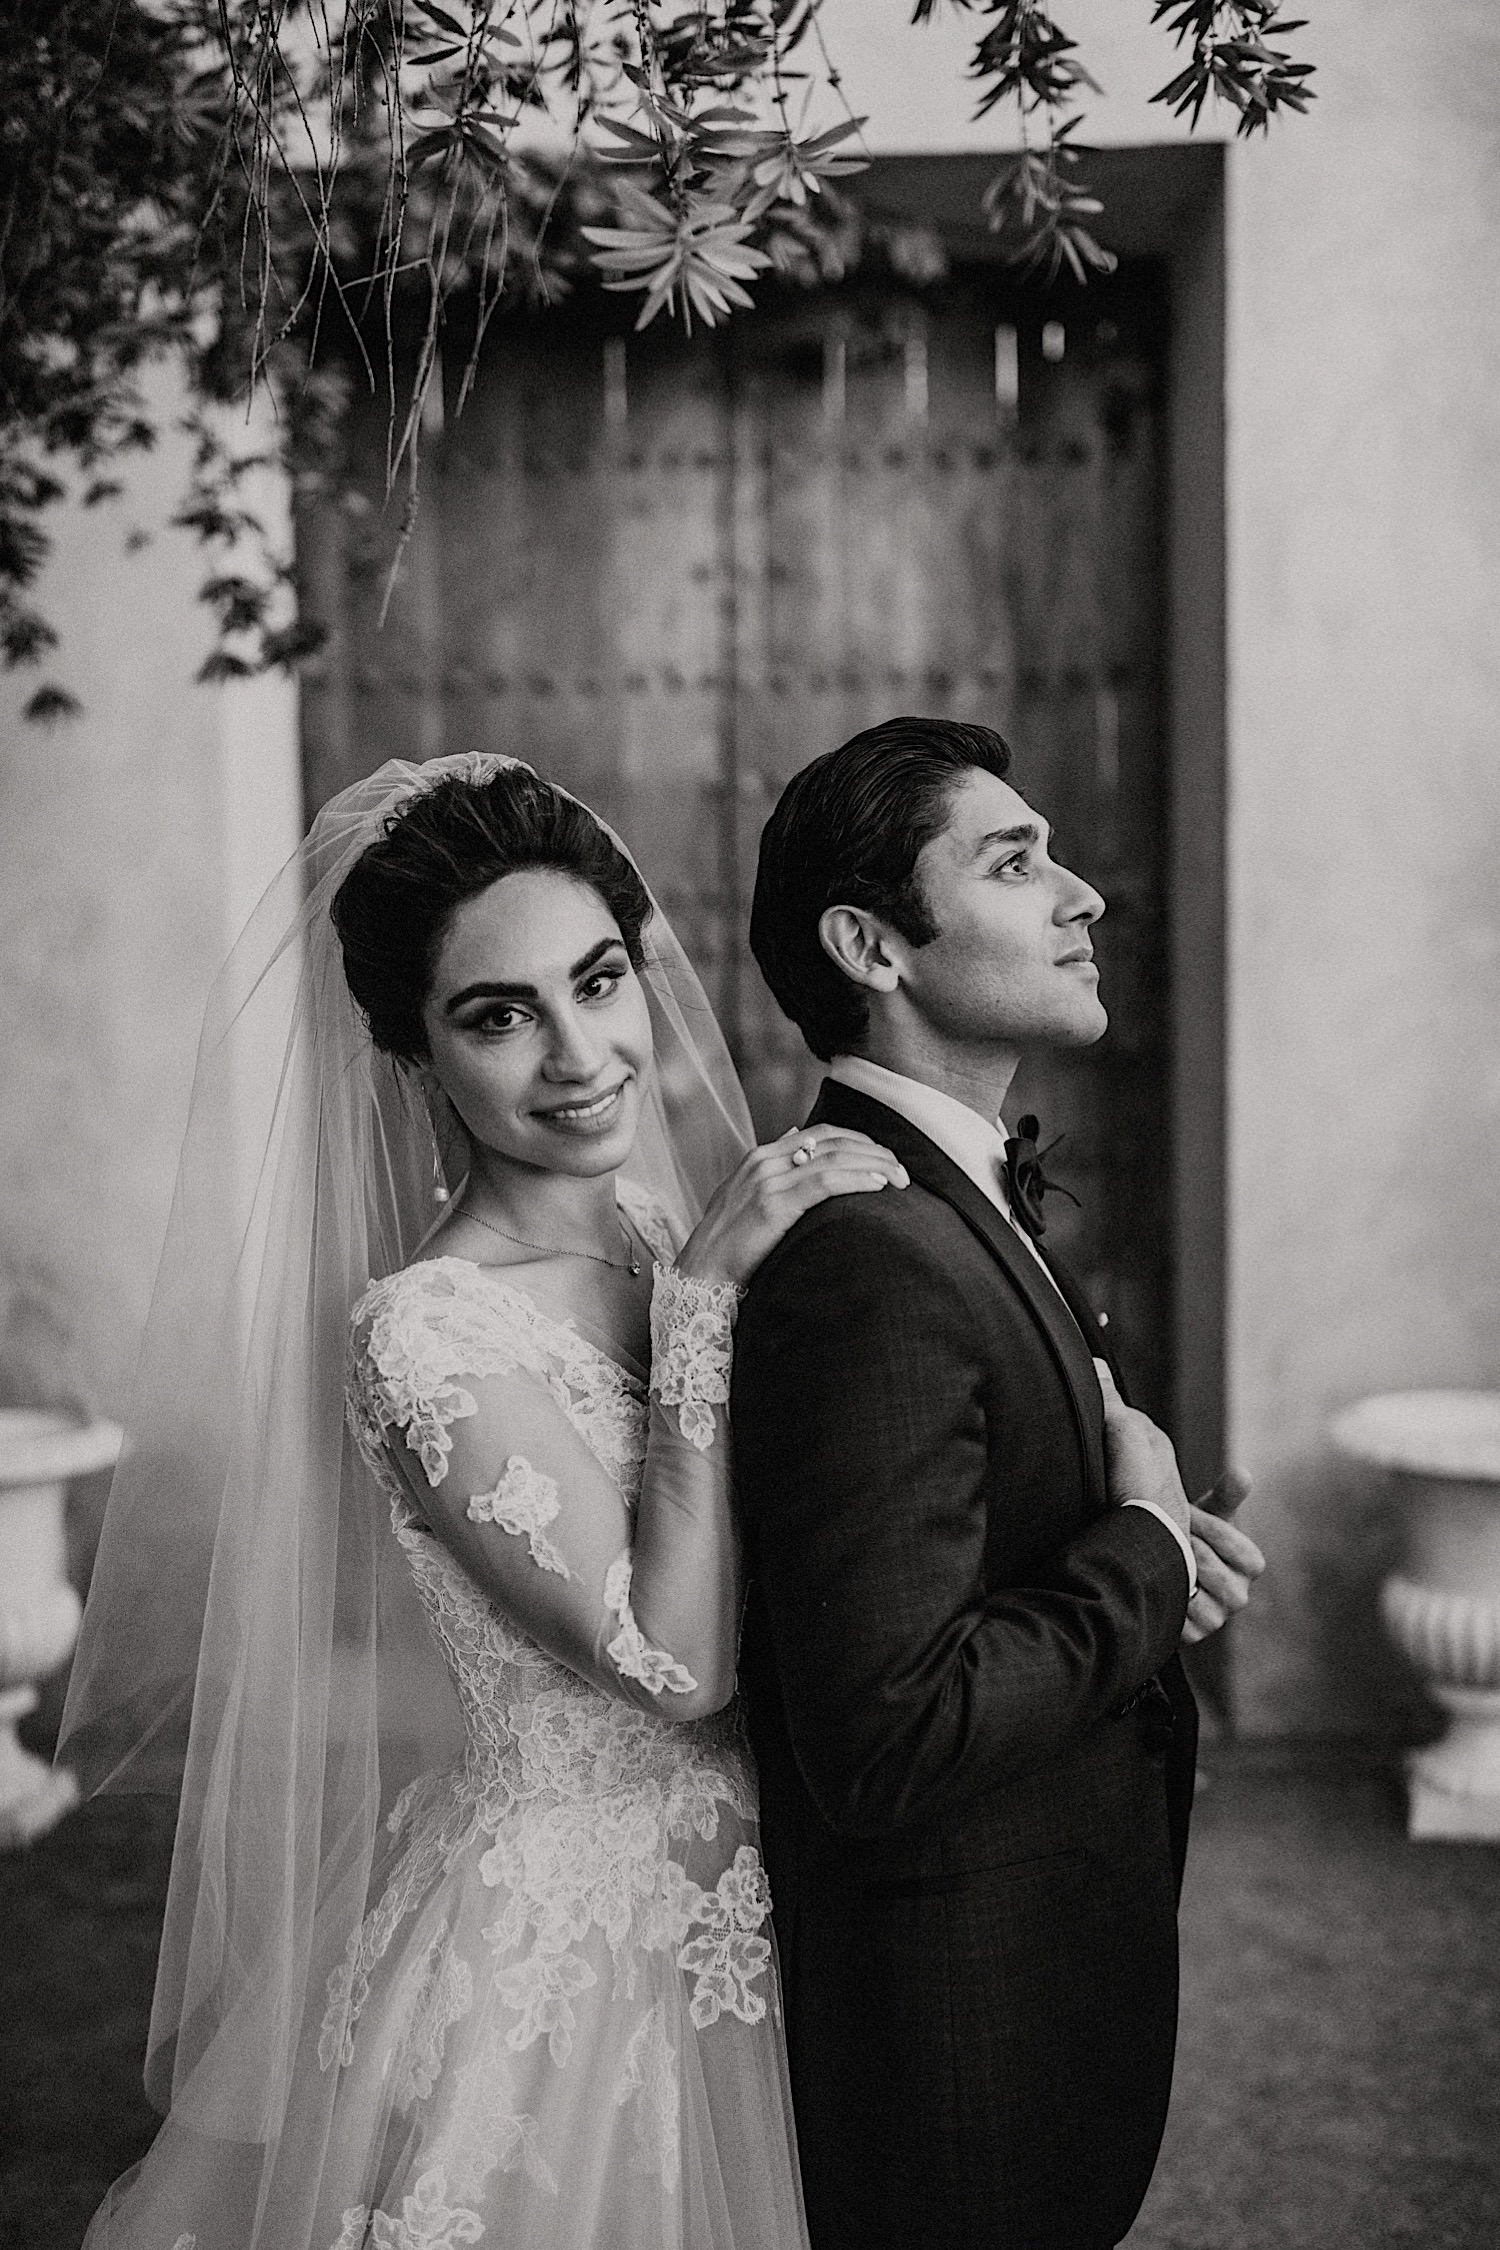 weddingphotographersevilla-persianwedding-ernestovillalba-0055.JPG